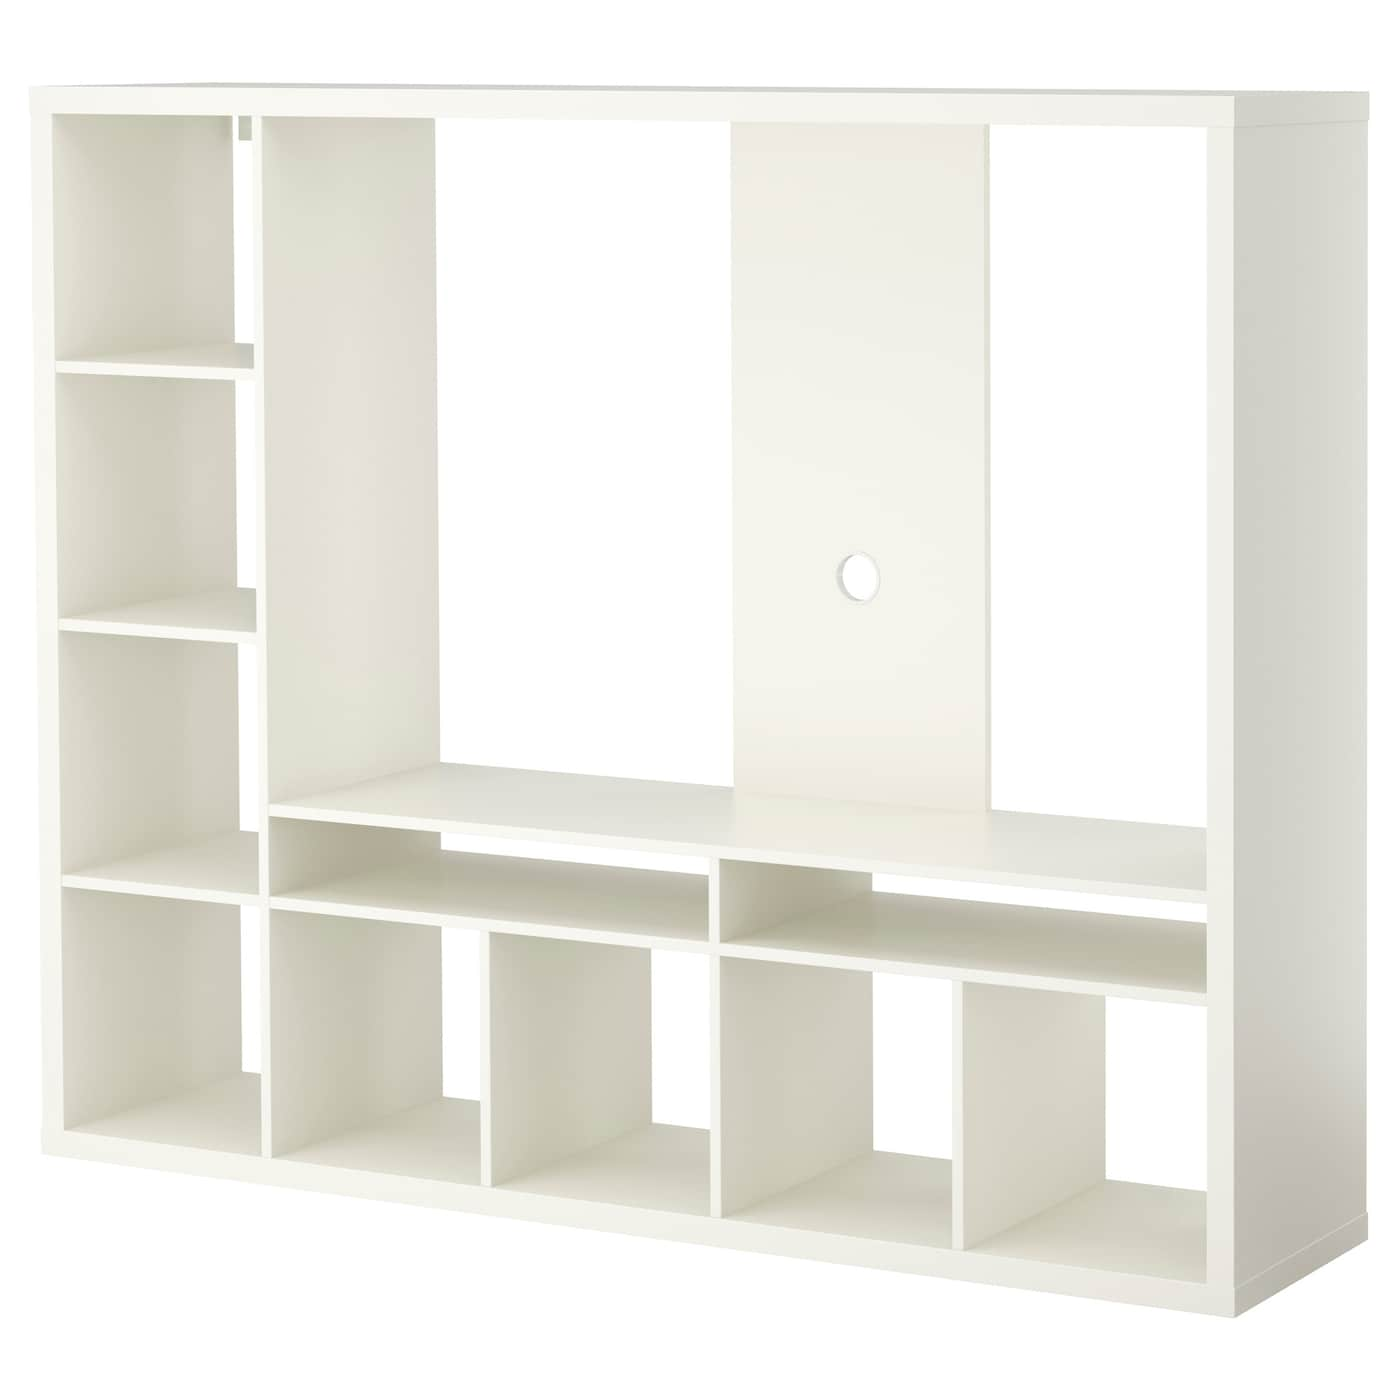 Storage Furniture Accessories Ikea Ireland # Meuble Tv Kallax Ikea